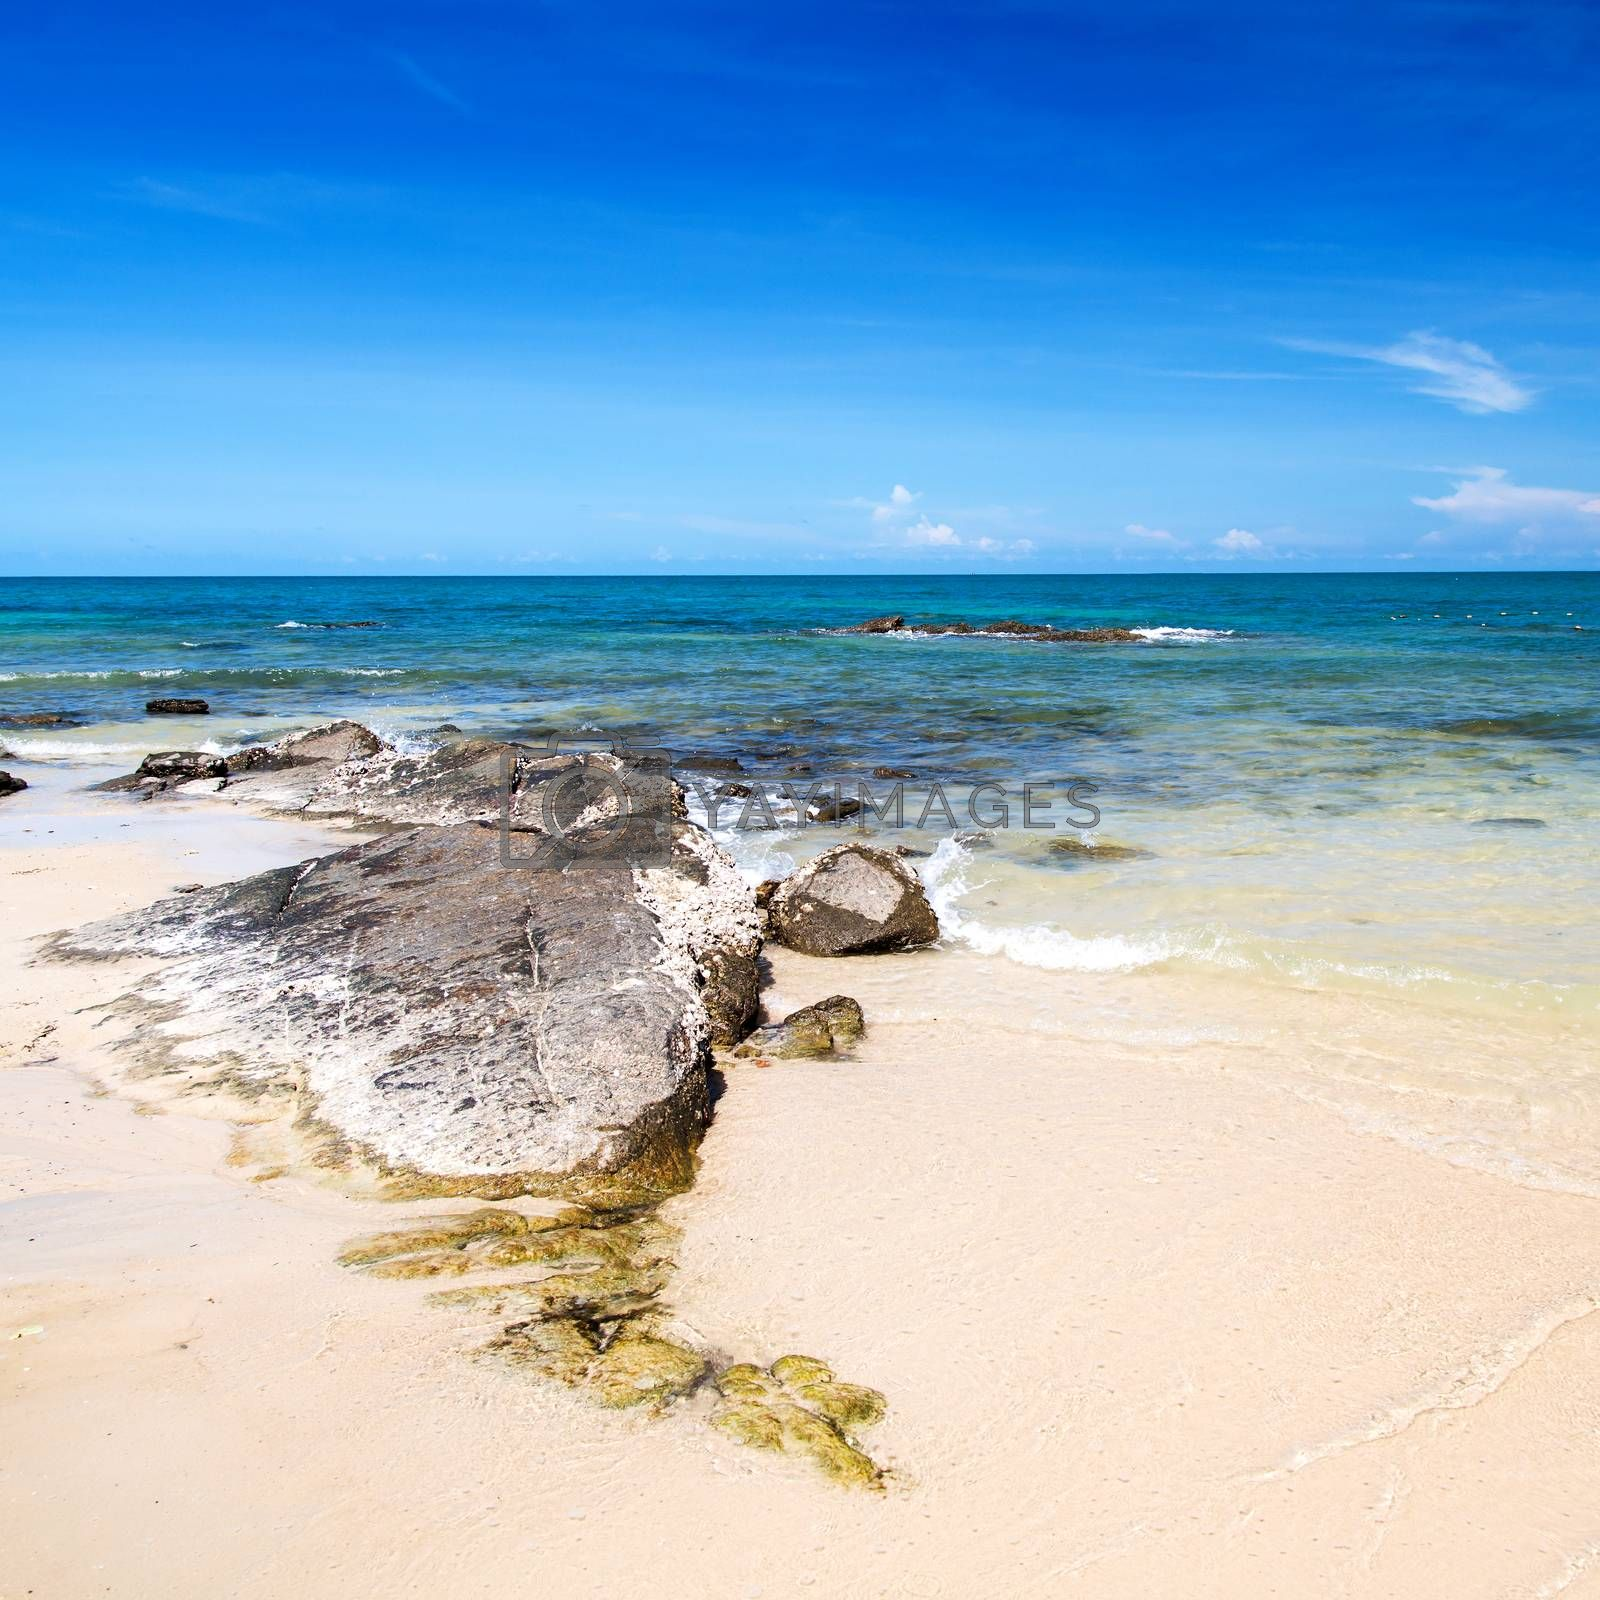 Sai Kaew Beach, Mu Koh Samet - Khao Laem Ya National Park, Rayon by jakgree